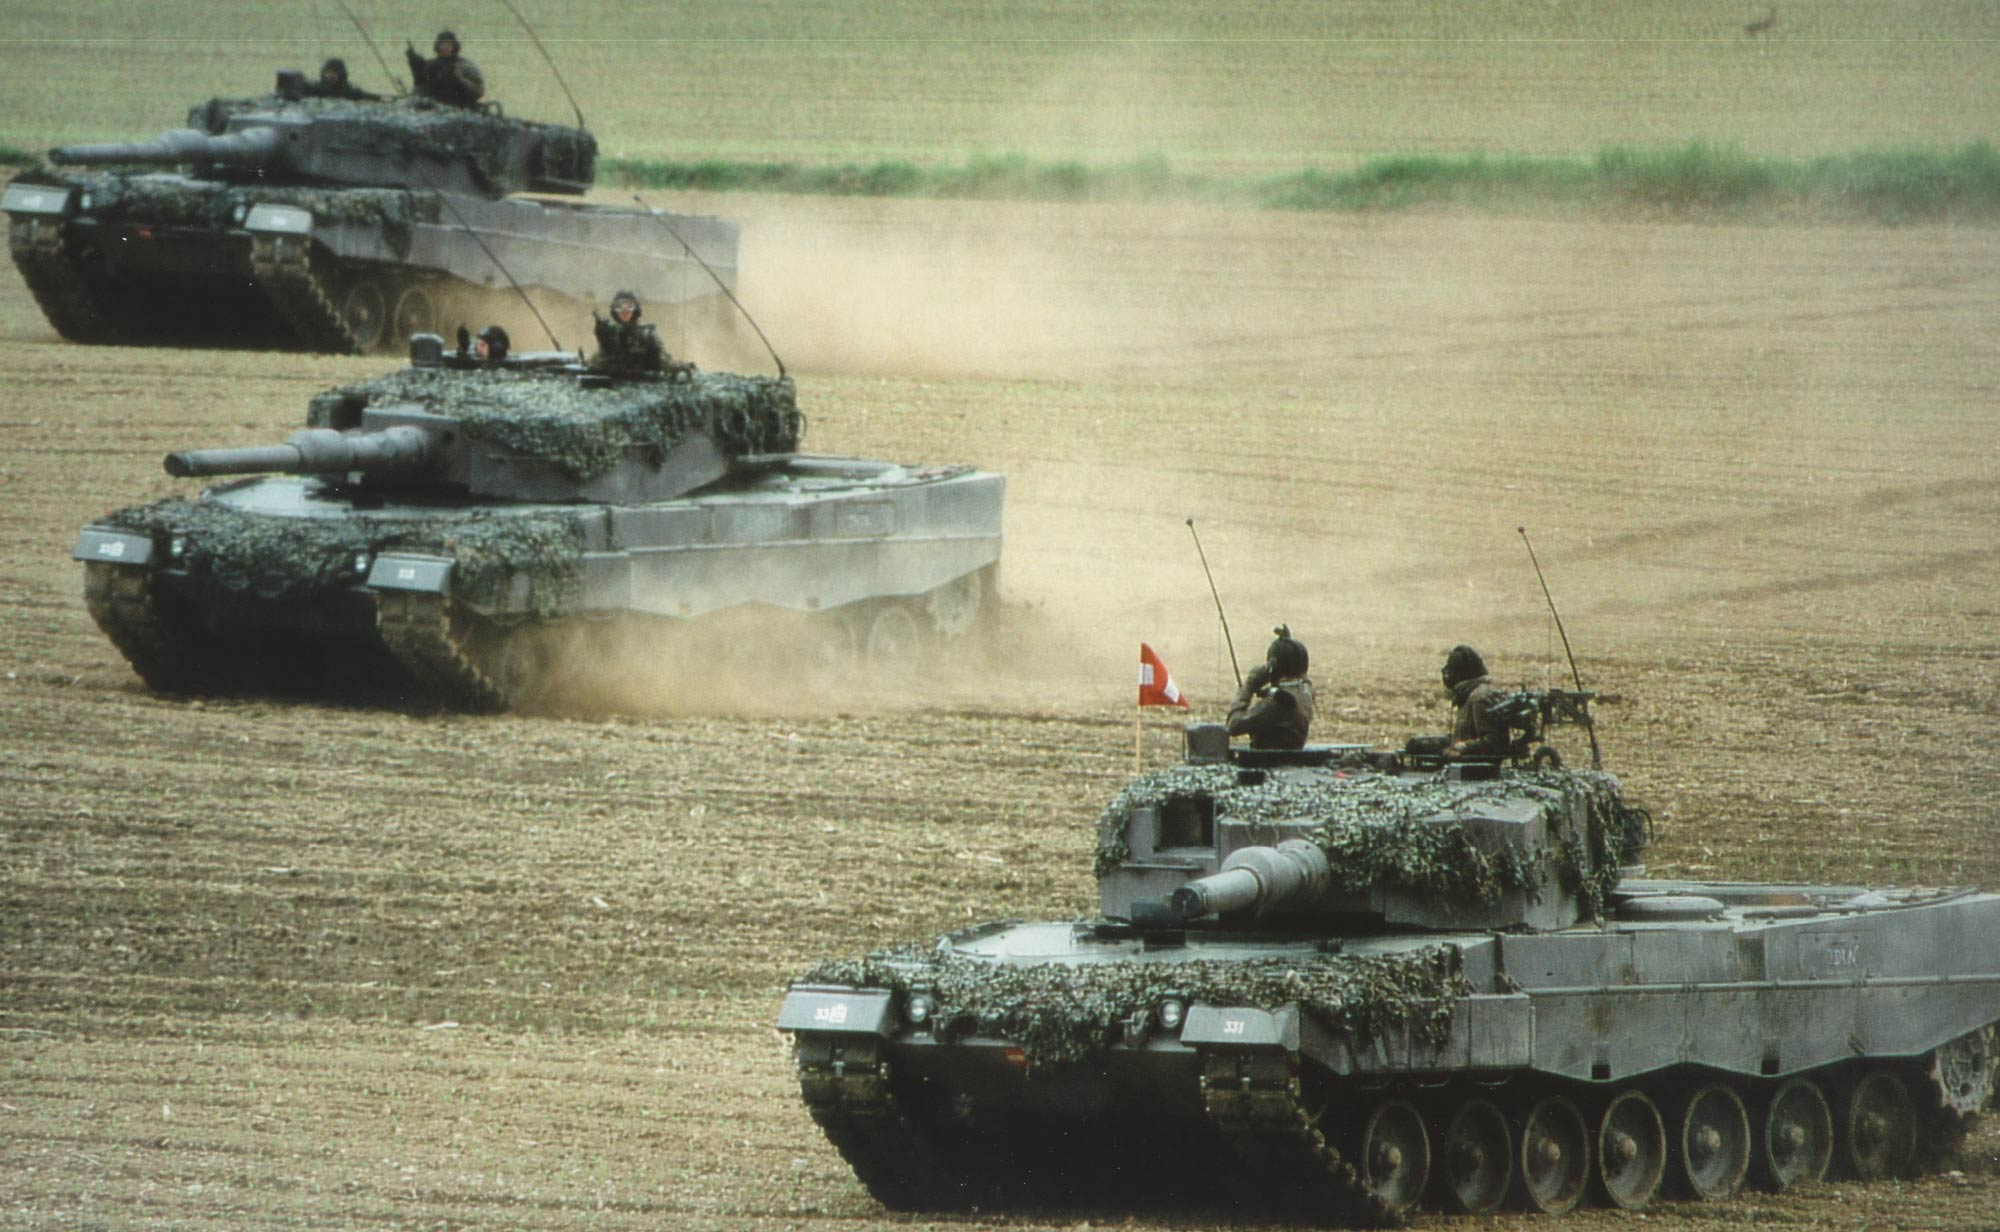 German Leopard 2 tanks during a field exercise.